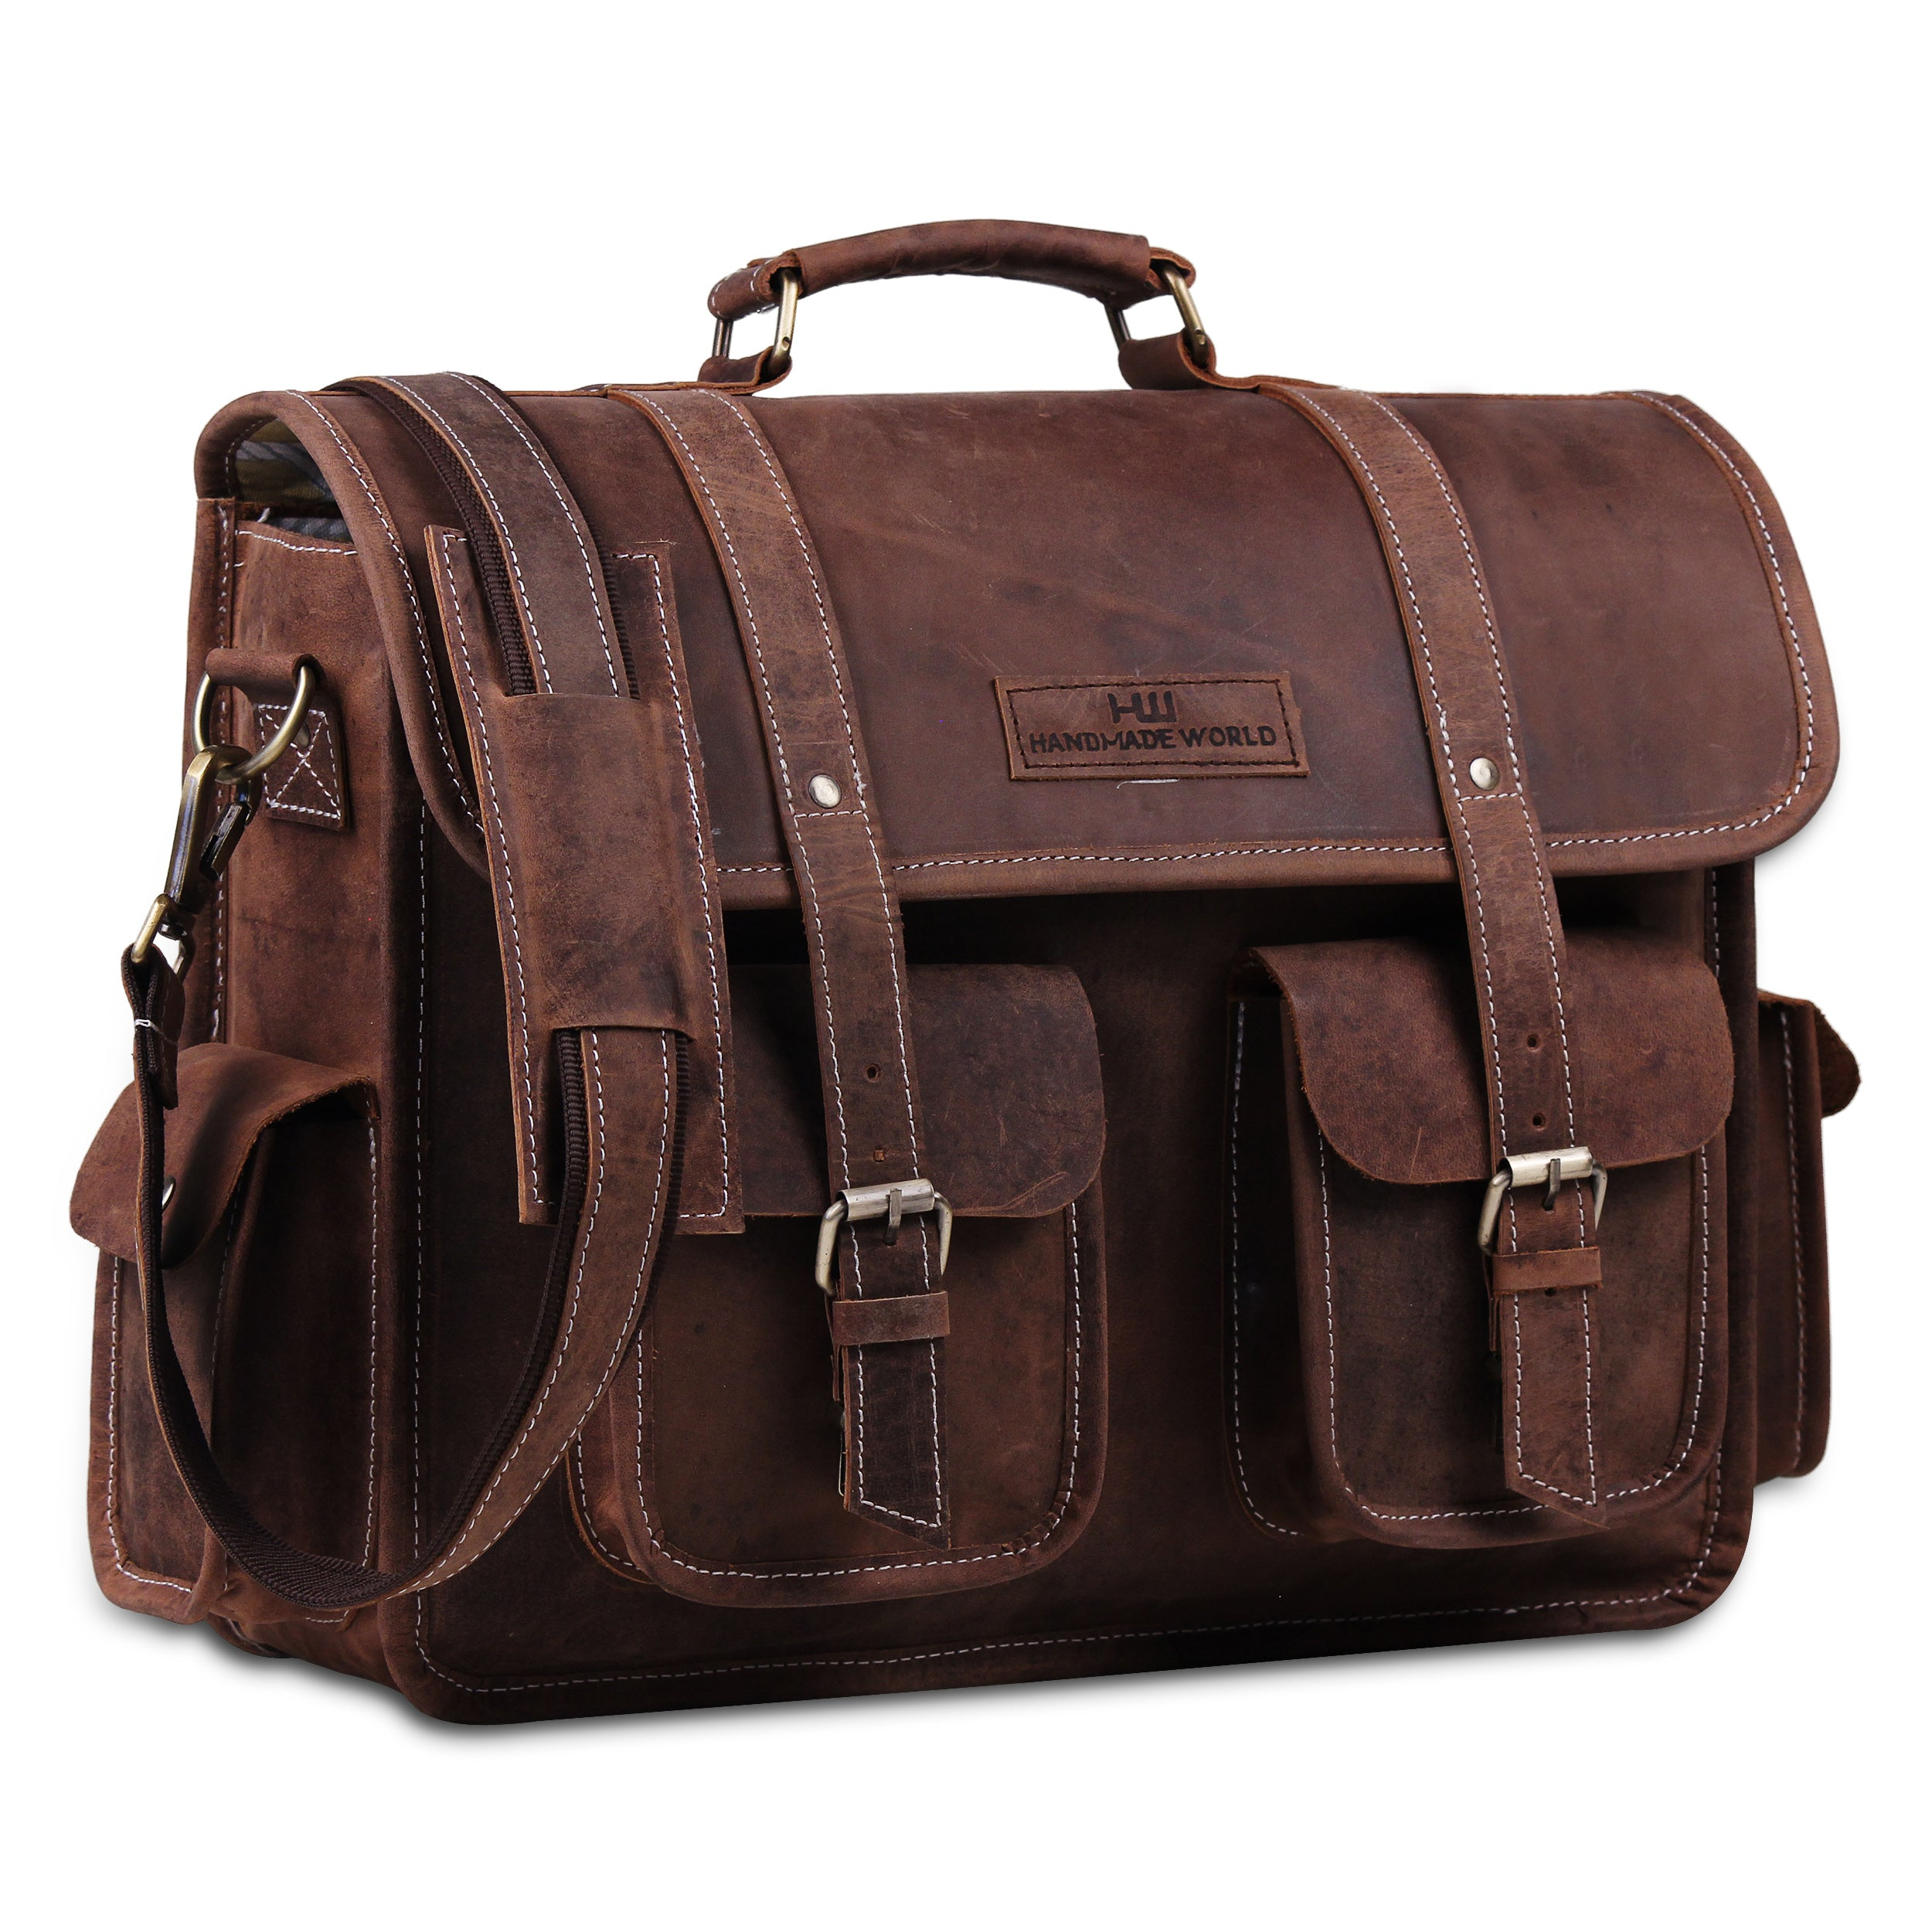 Laptop Padded Messenger Briefcase for professionals, office work etc.